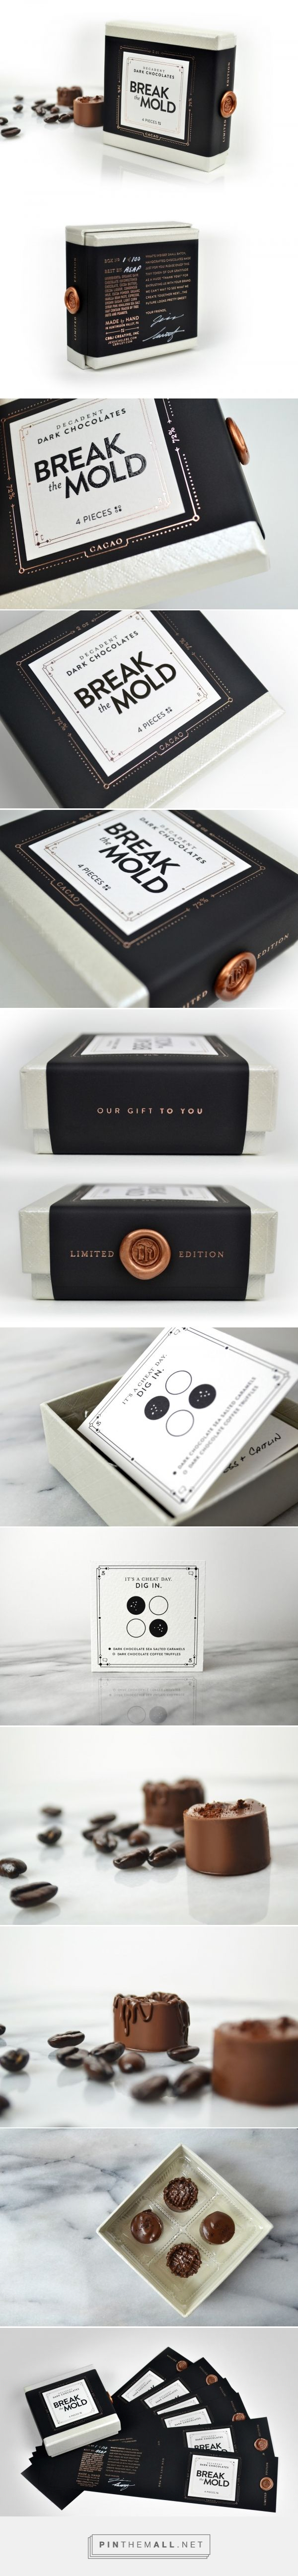 Break the Mold Limited Edition Chocolates - Packaging of the World - Creative Package Design Gallery - http://www.packagingoftheworld.com/2016/12/break-mold-limited-edition-chocolates.html